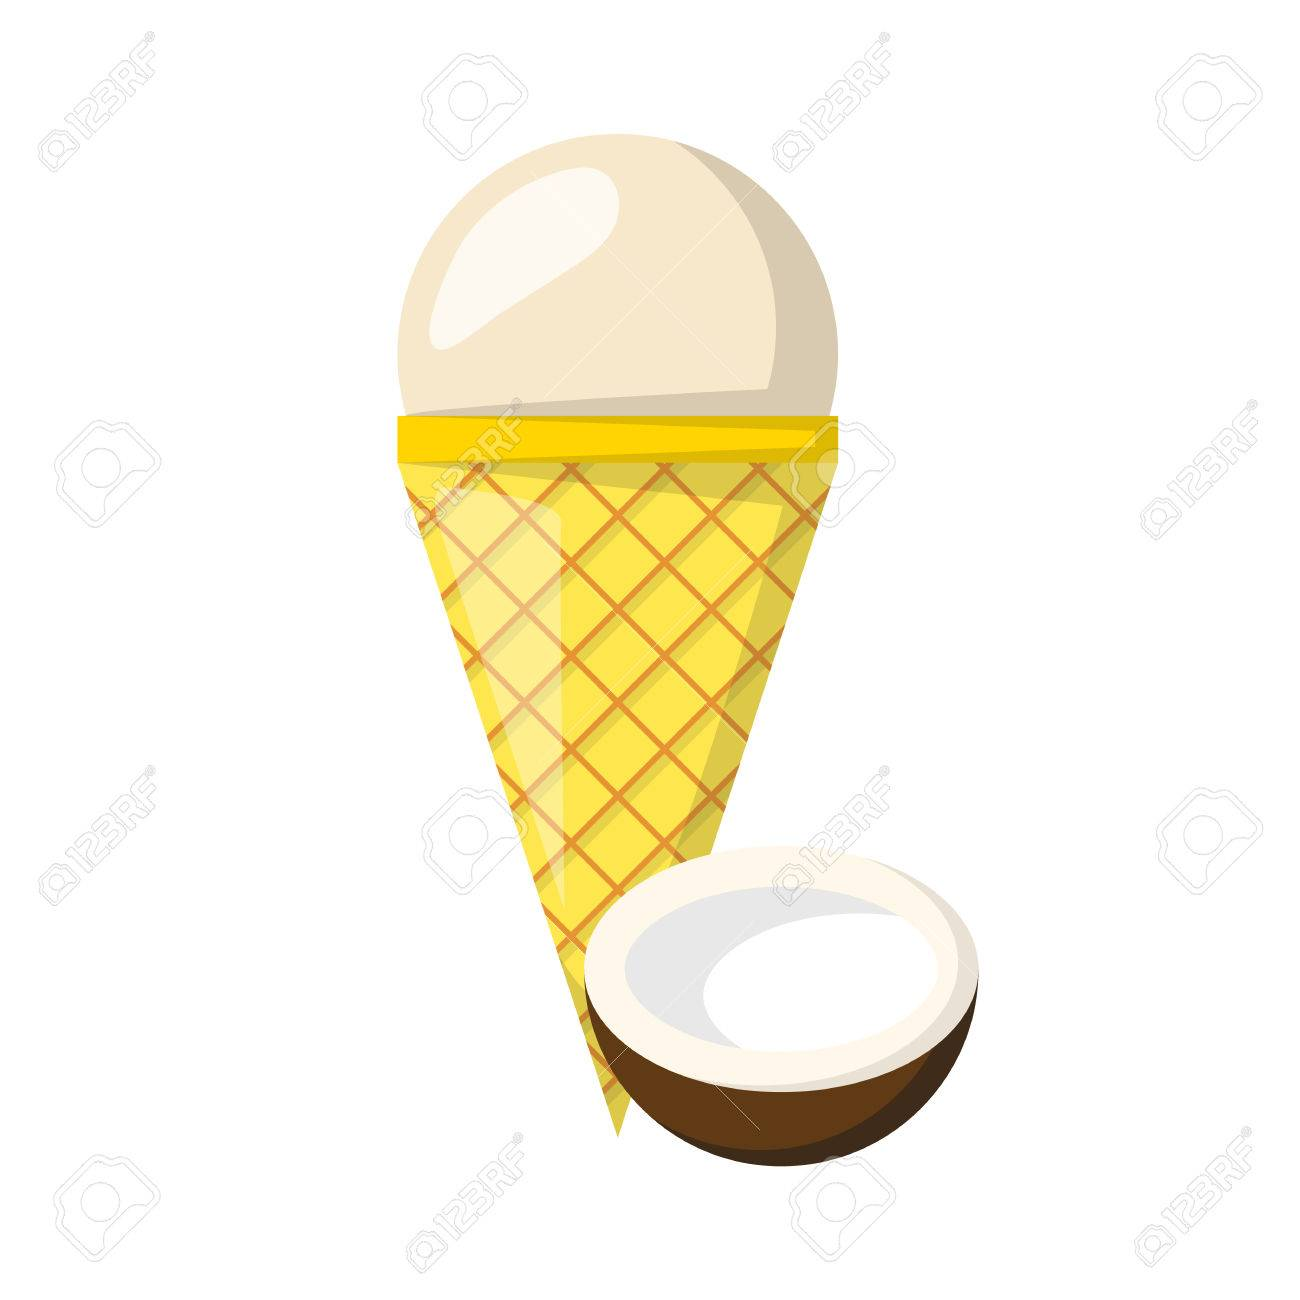 1300x1300 Vector Illustration With Cartoon Coconut Ice Cream Ball In Cone